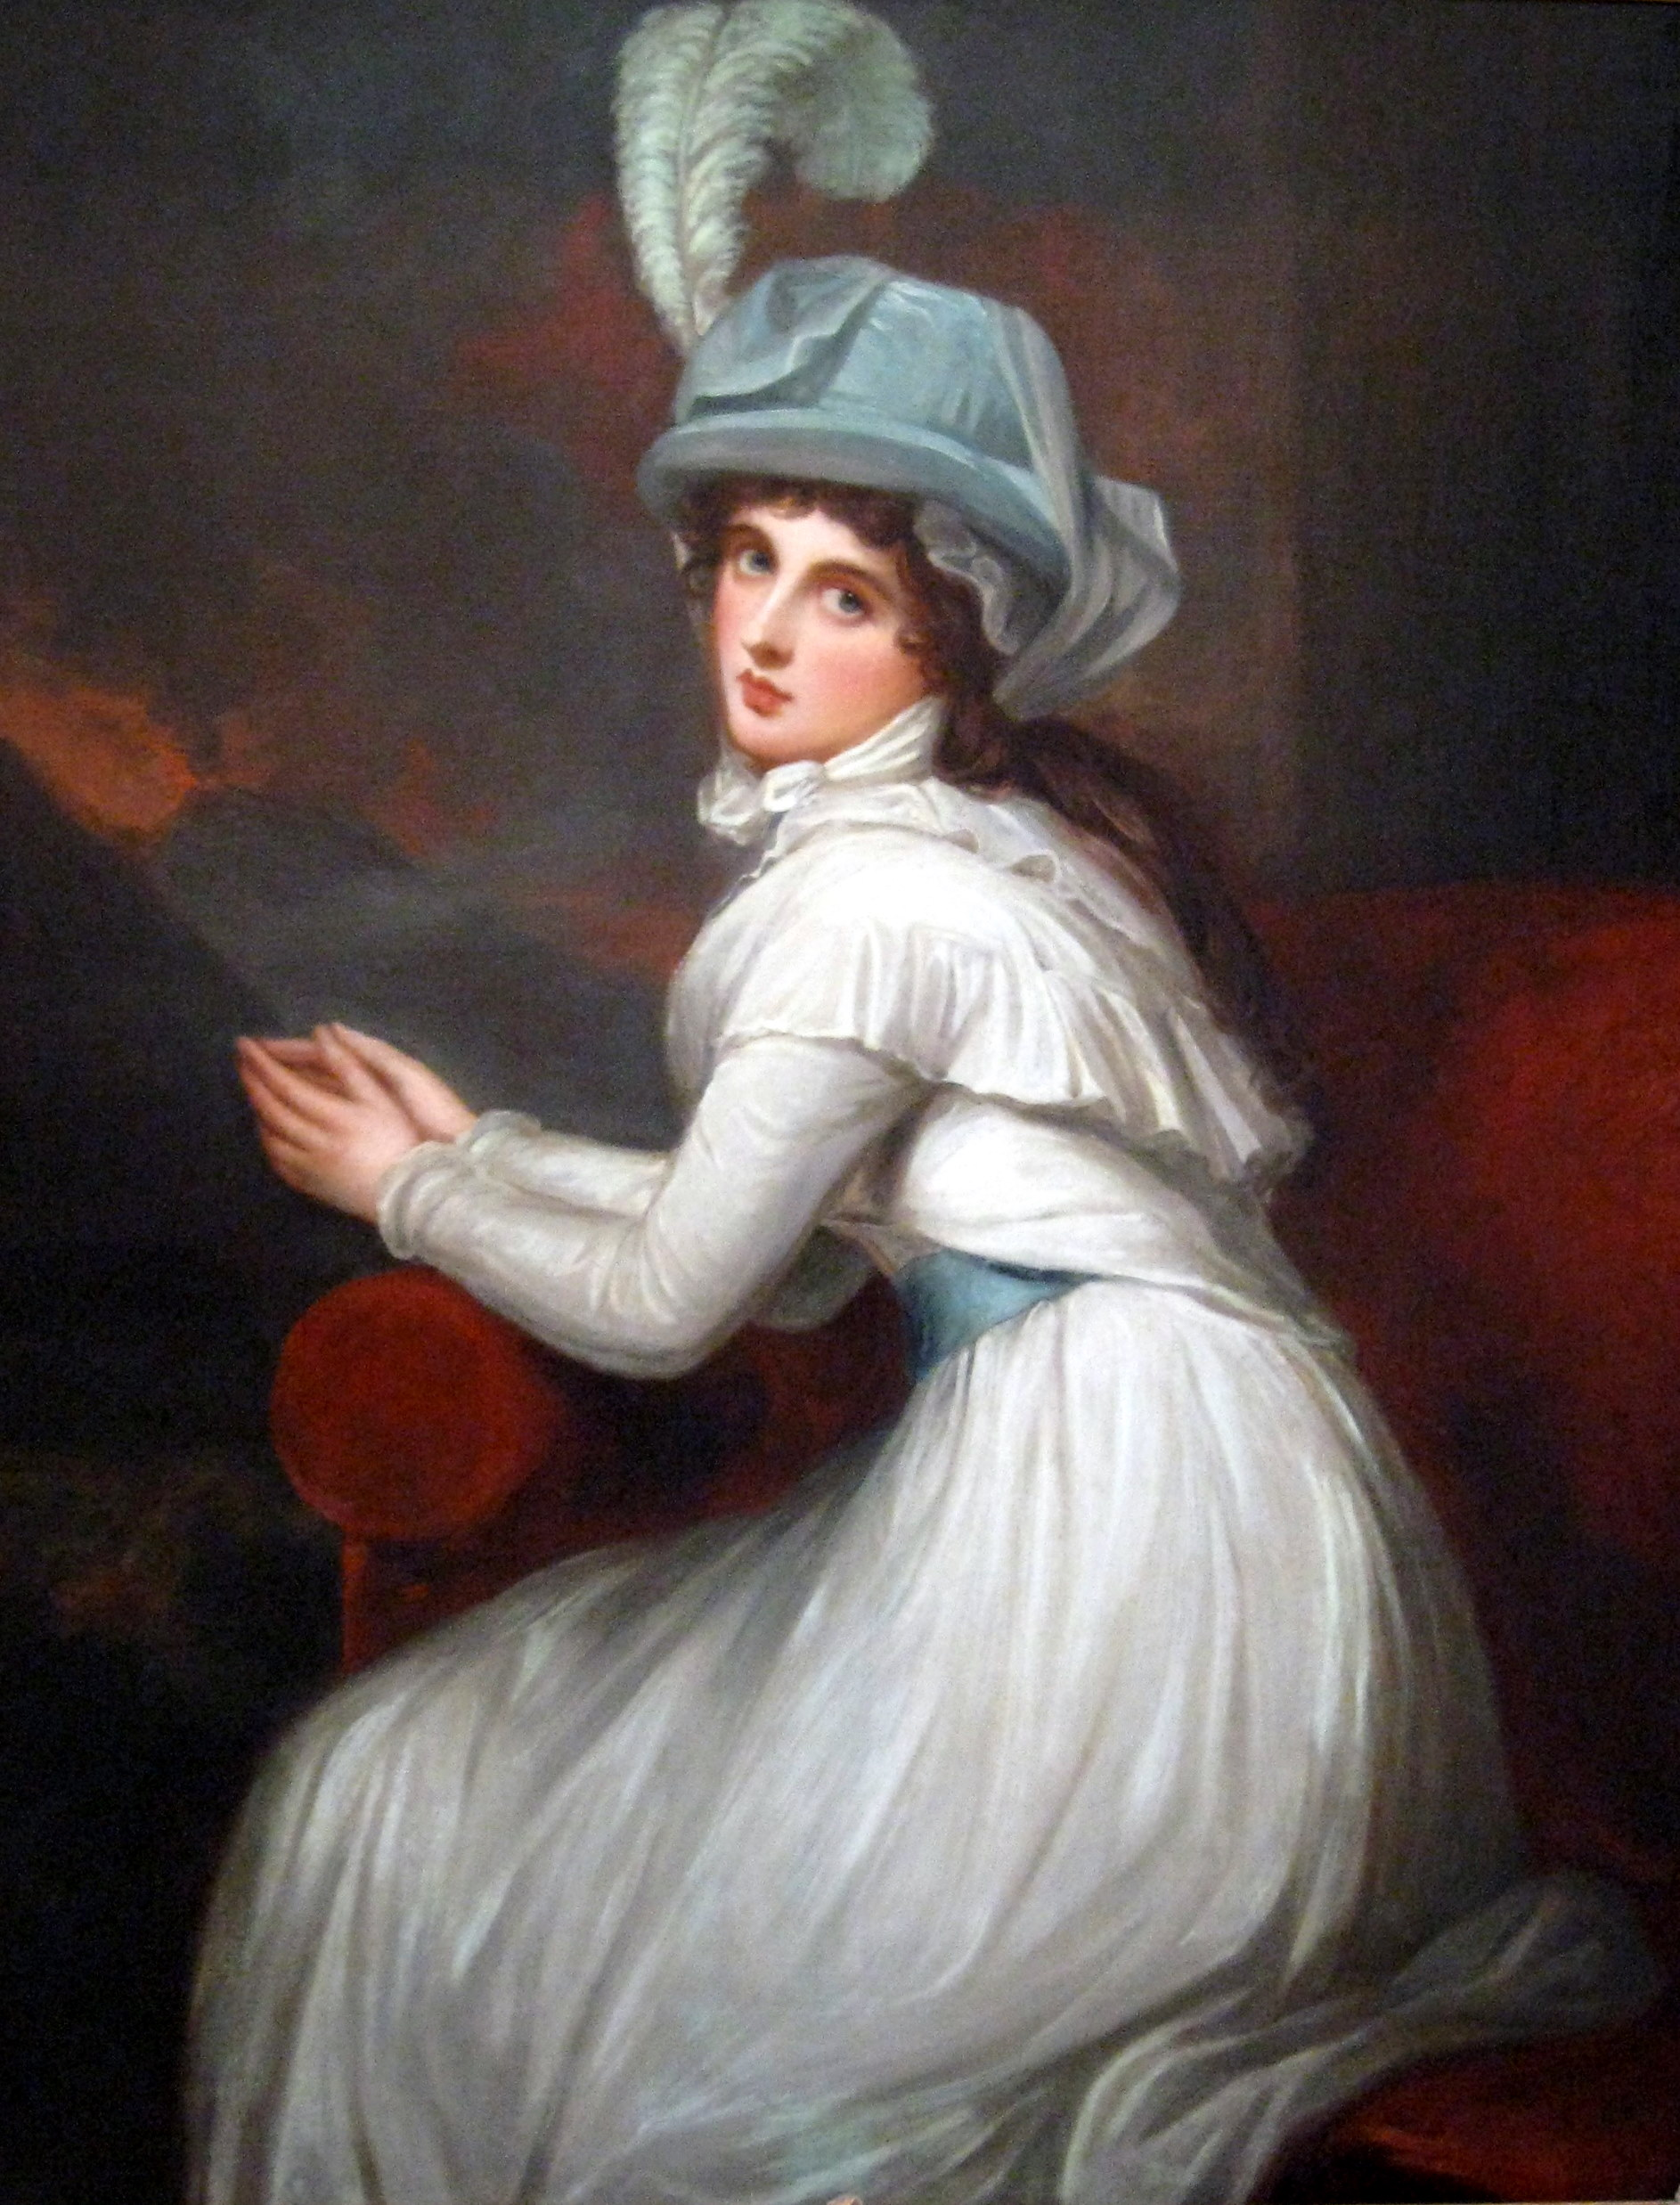 https://upload.wikimedia.org/wikipedia/commons/5/51/George_Romney_-_Lady_Hamilton_%281791%29.jpg